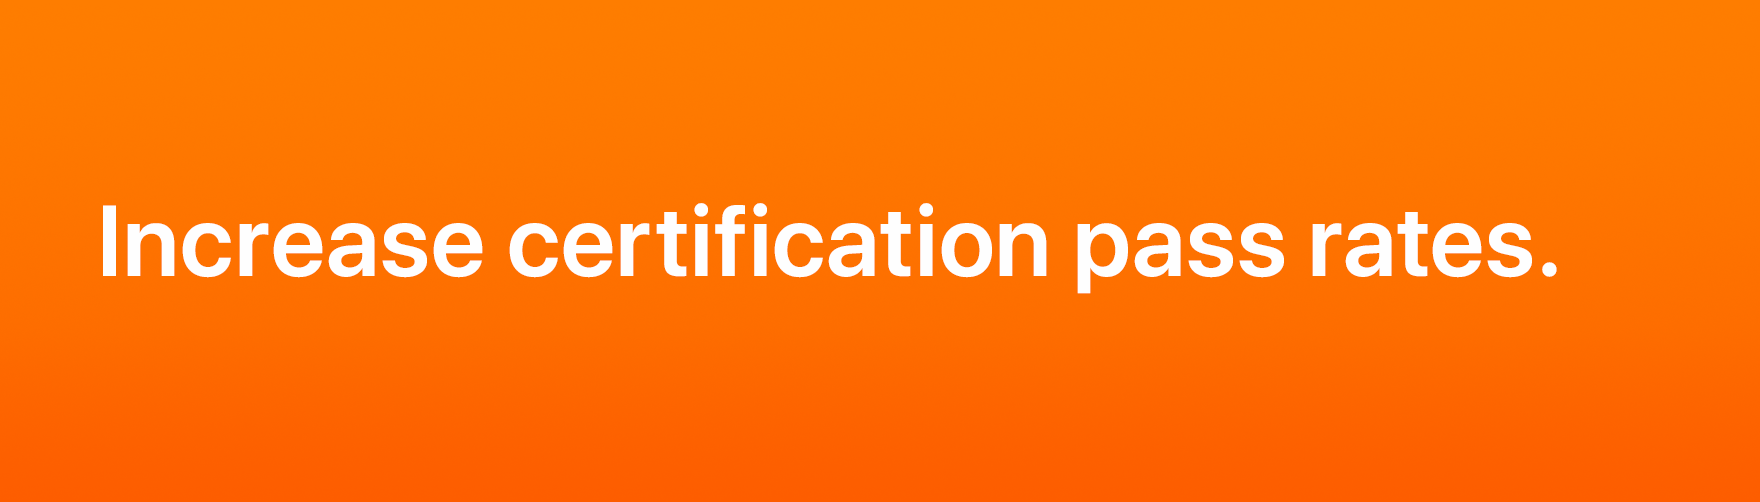 Practice, Increase certification pass rates